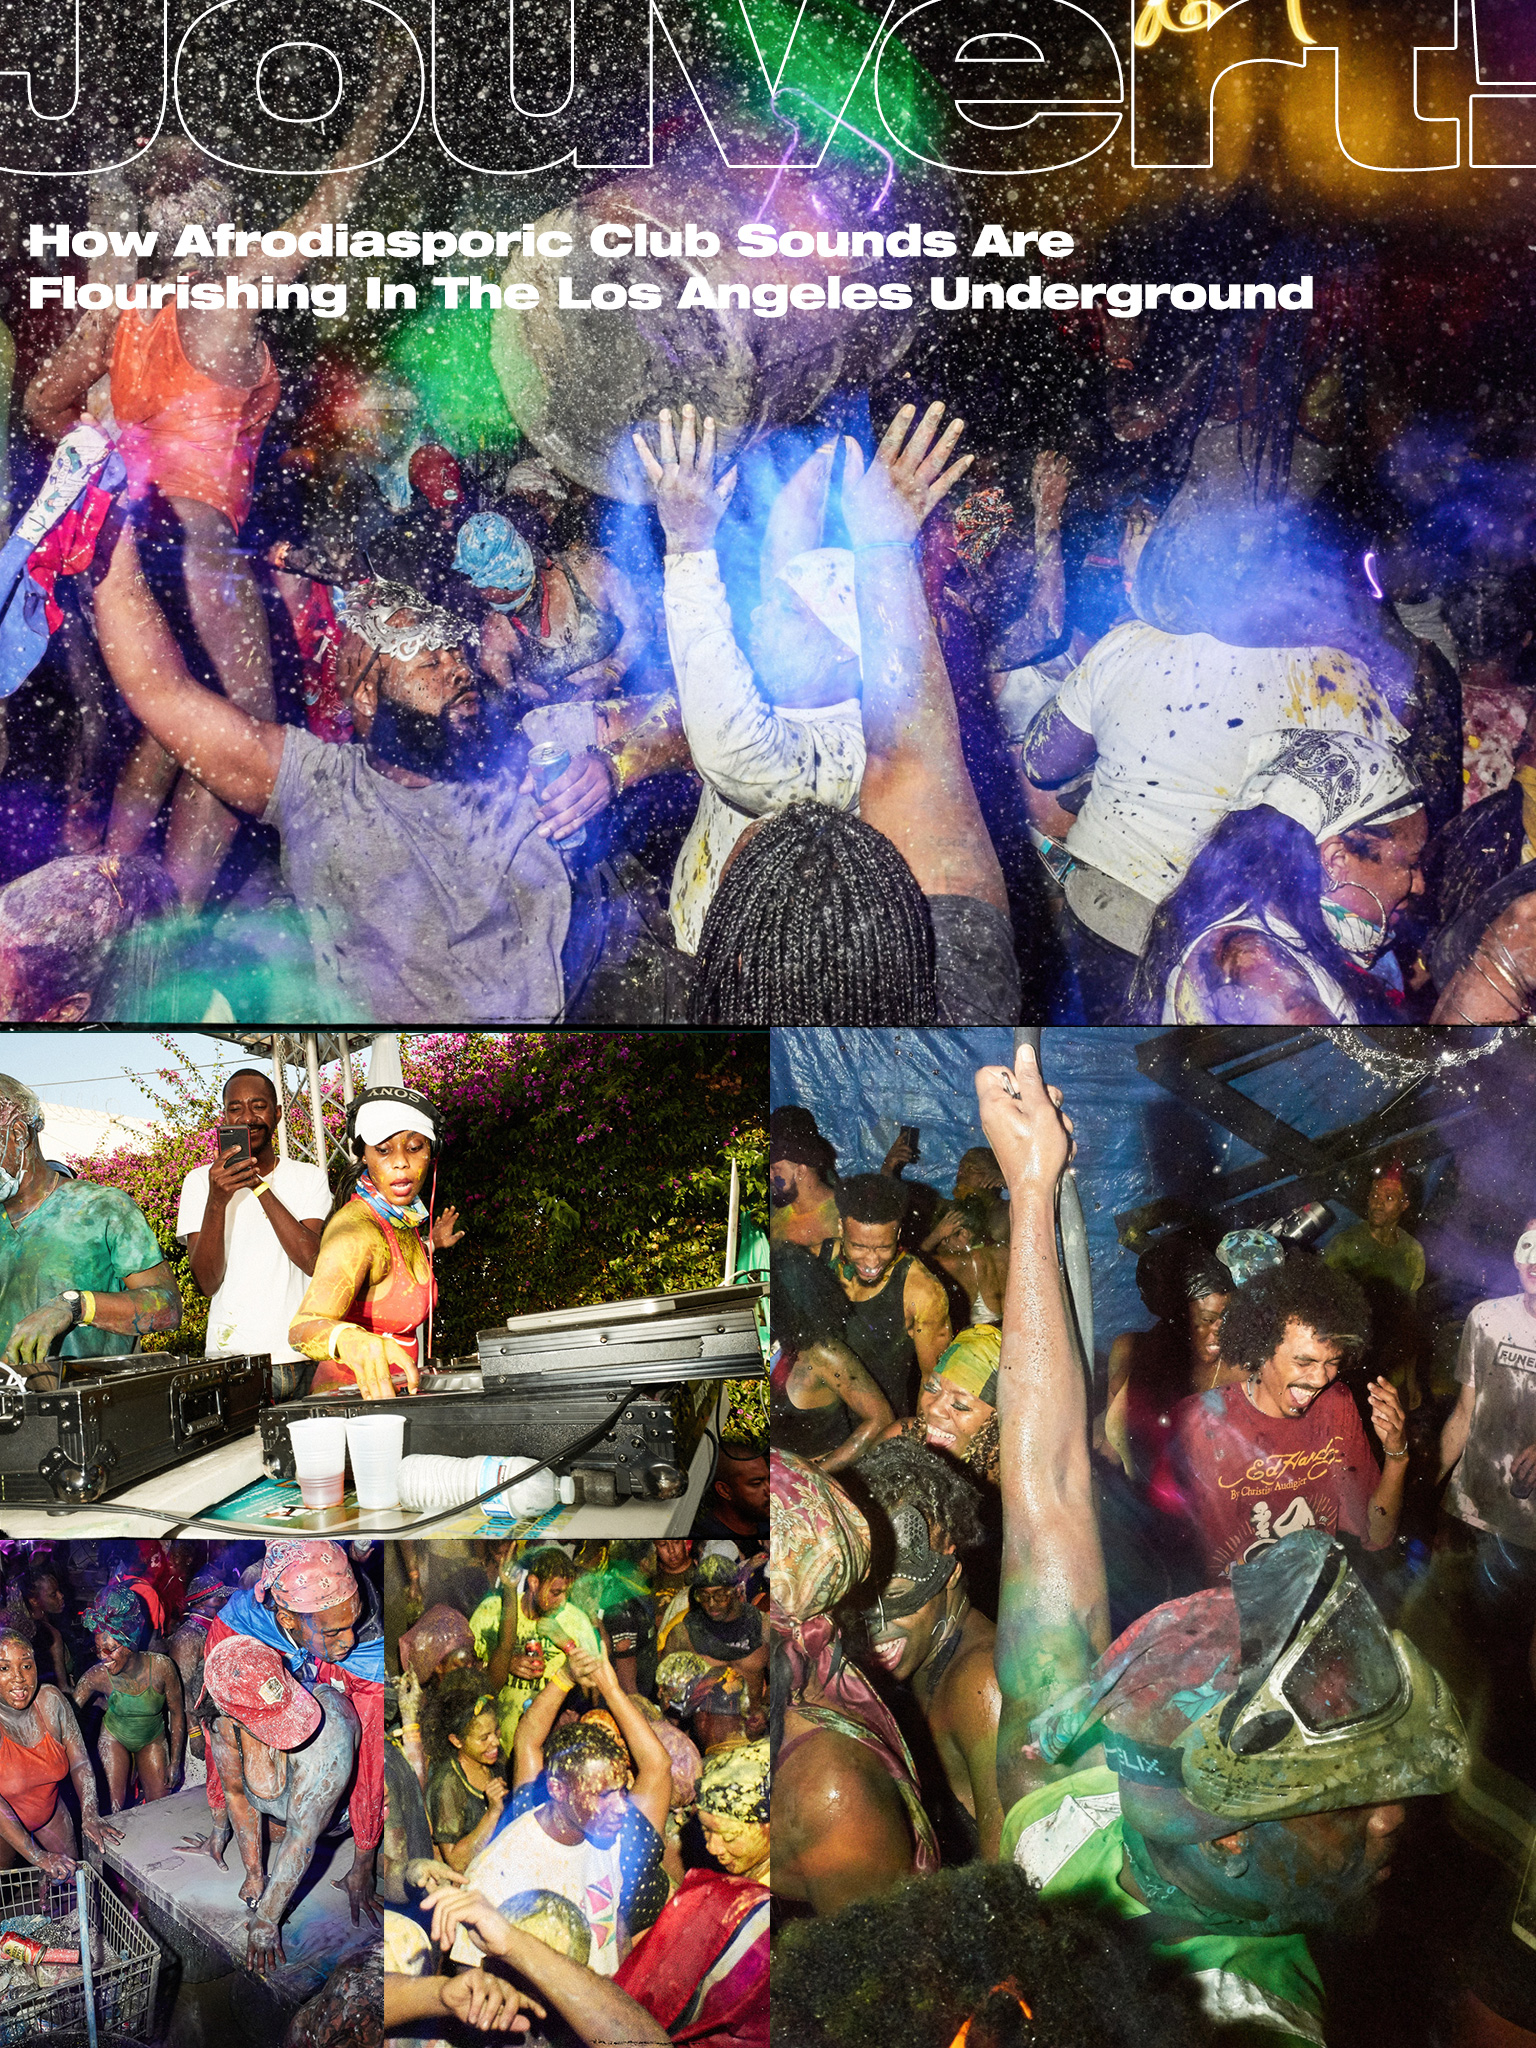 Jouvert! How Afrodiasporic Club Sounds Are Flourishing In The Los Angeles Underground